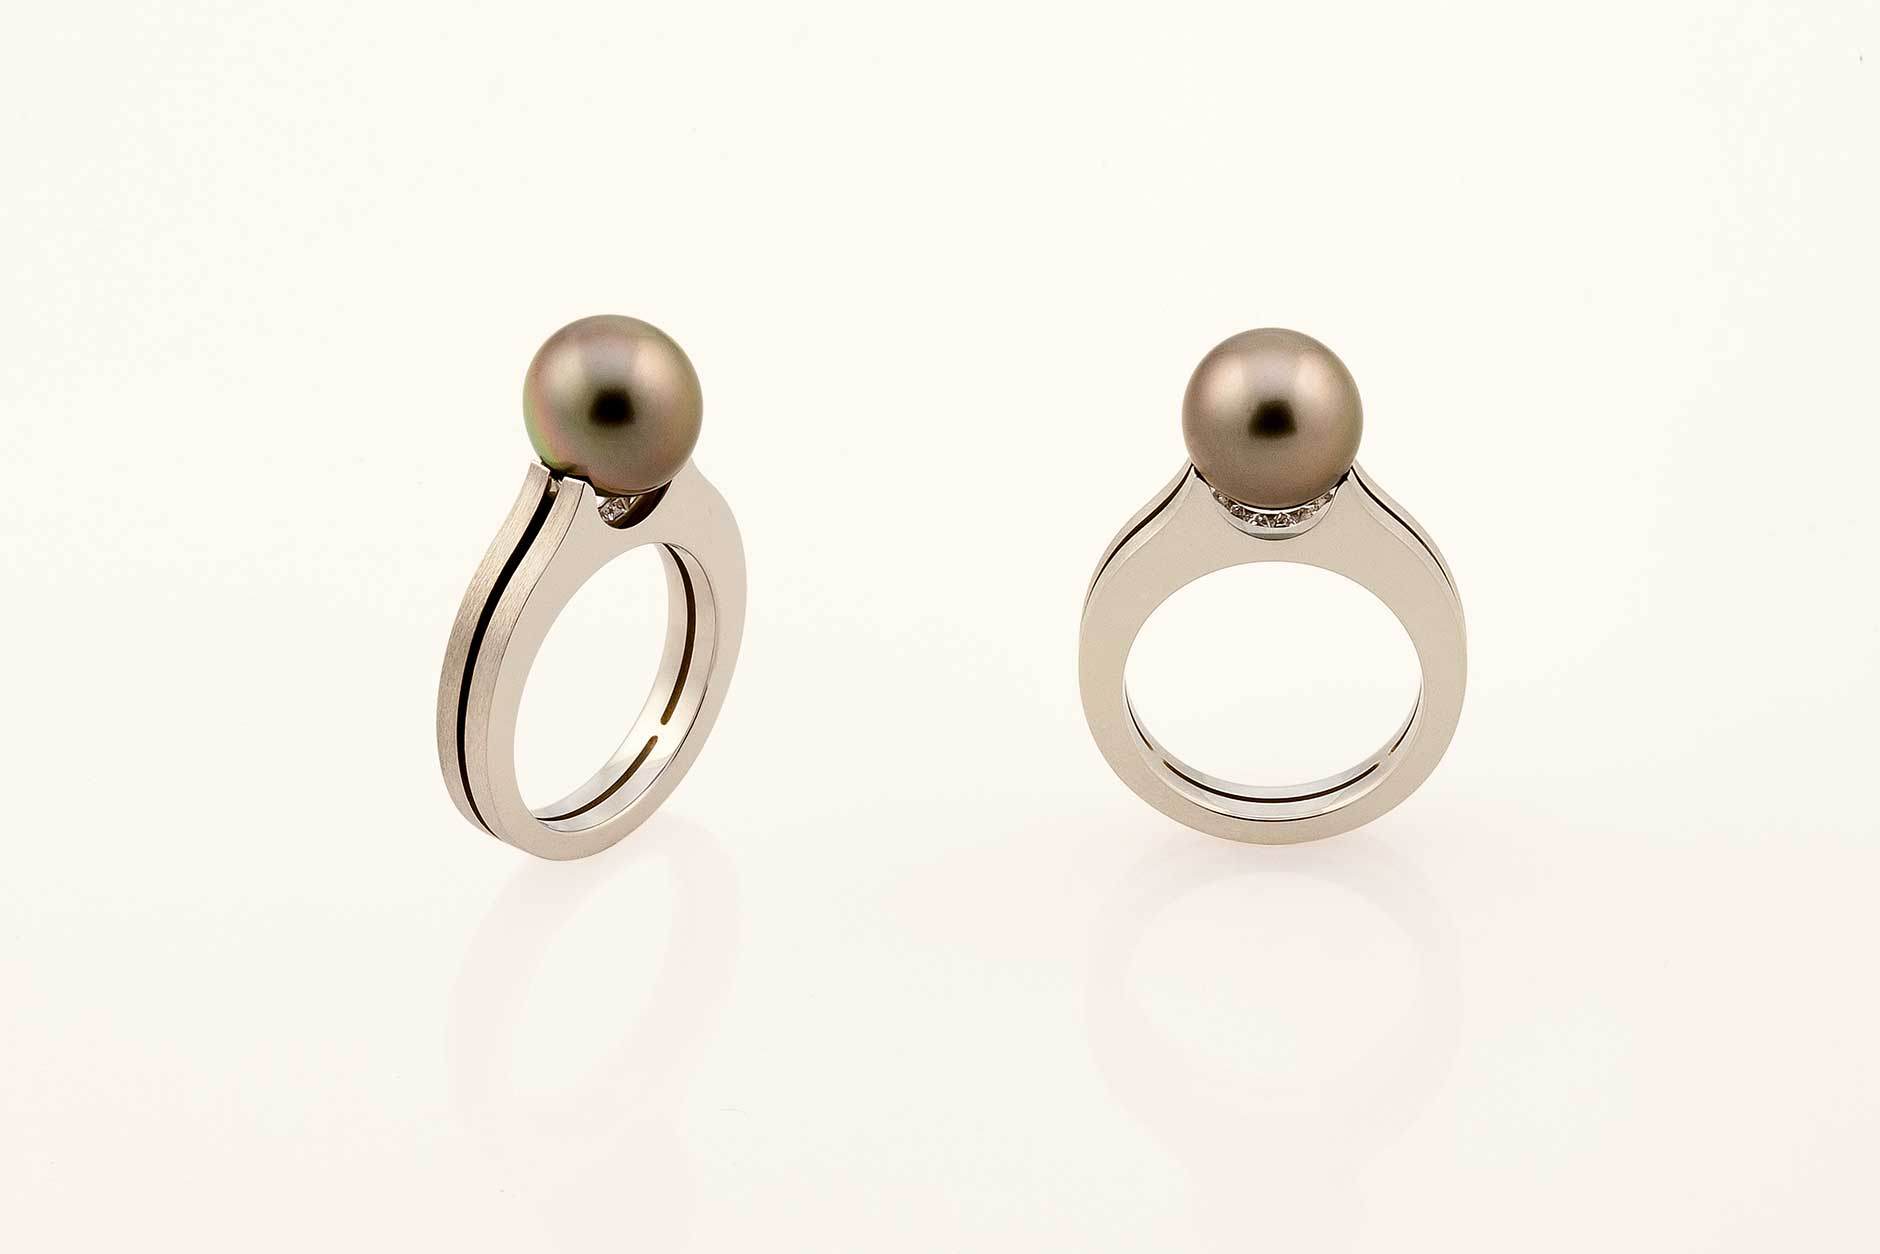 Piranha - 19k White Gold Custom Tahitian Pearl Ring - NÉWA Goldsmith